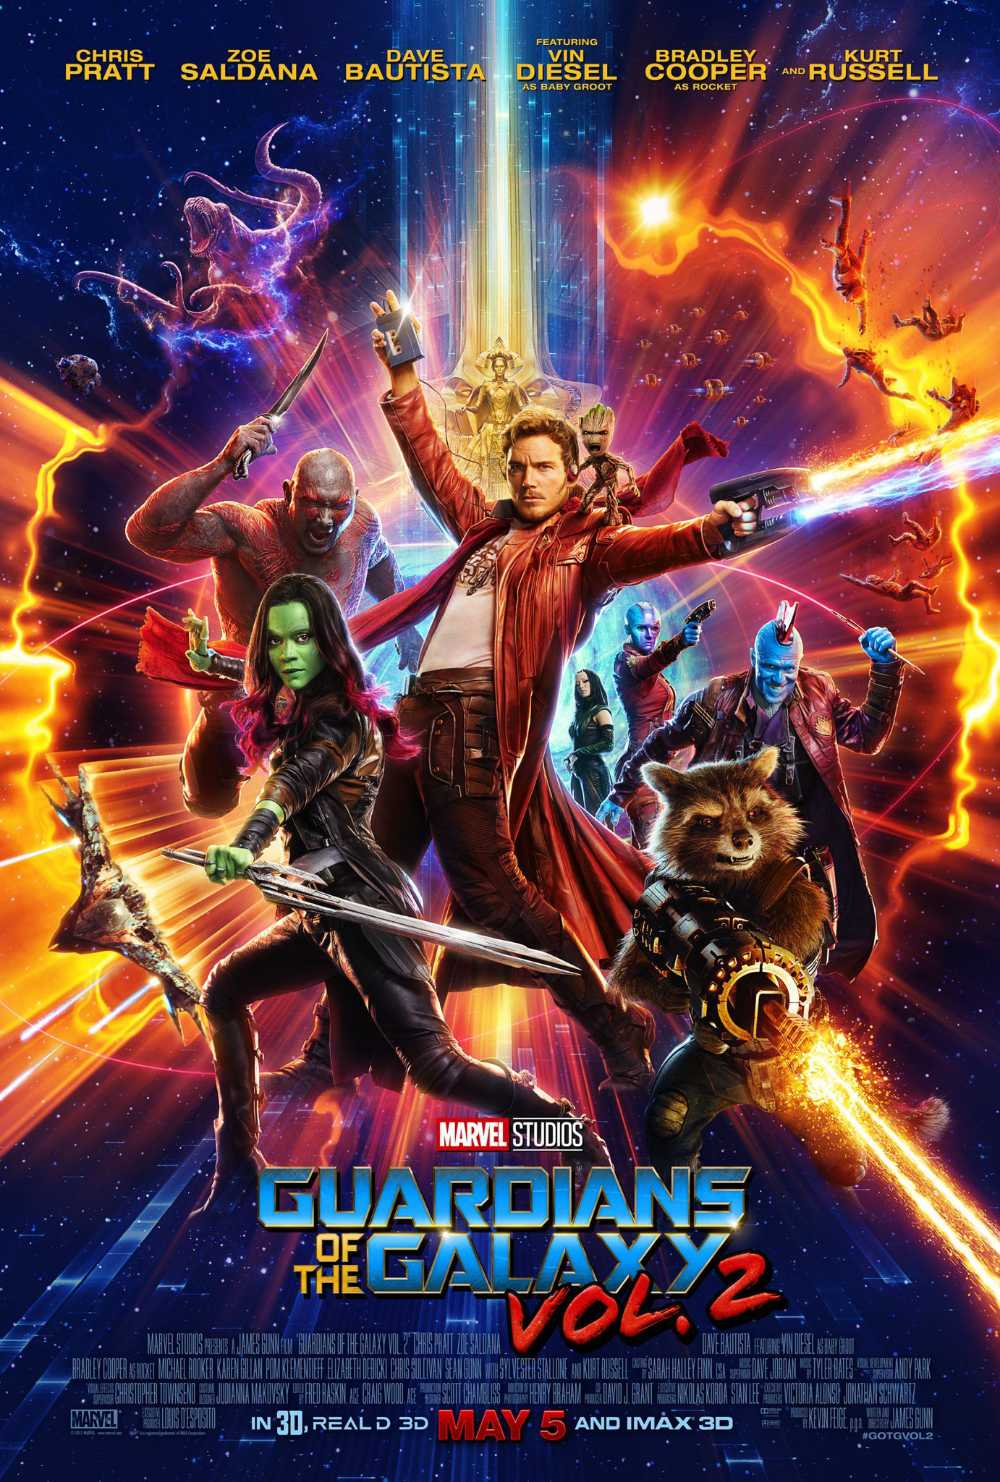 You are currently viewing Notes On A Film: Guardians Of The Galaxy Vol. 2